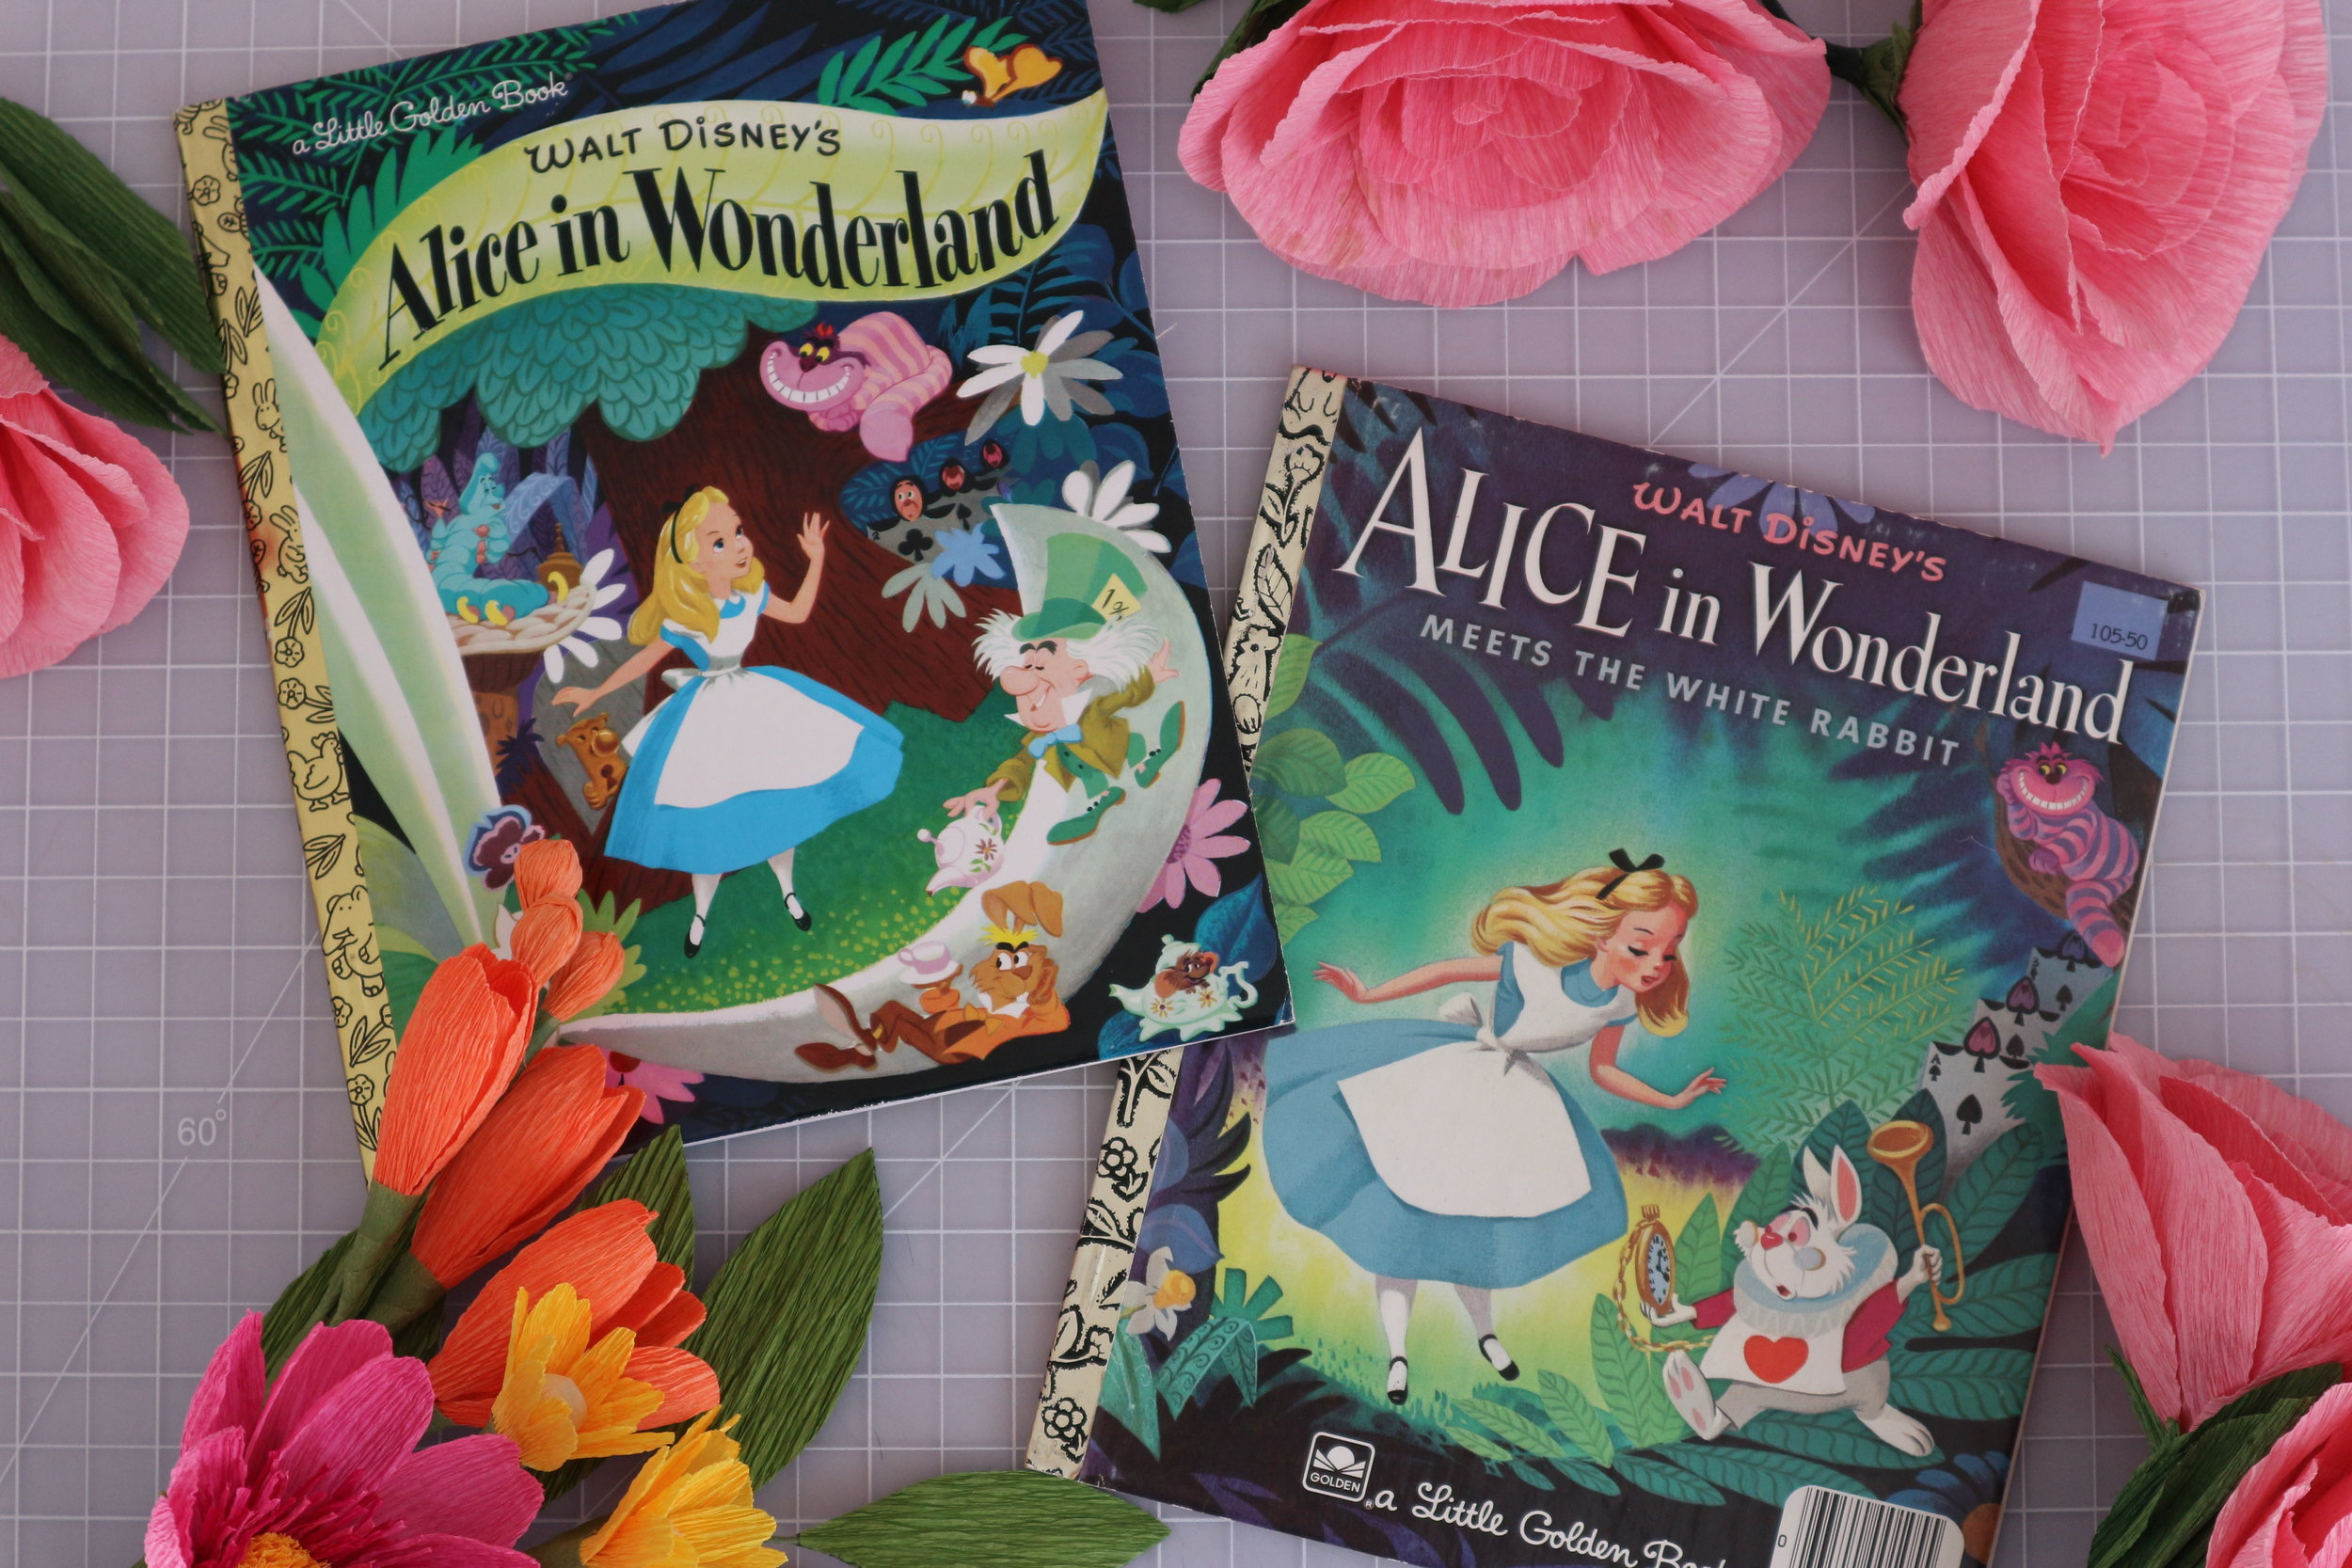 Alice in Wonderland - Little Golden Book editions